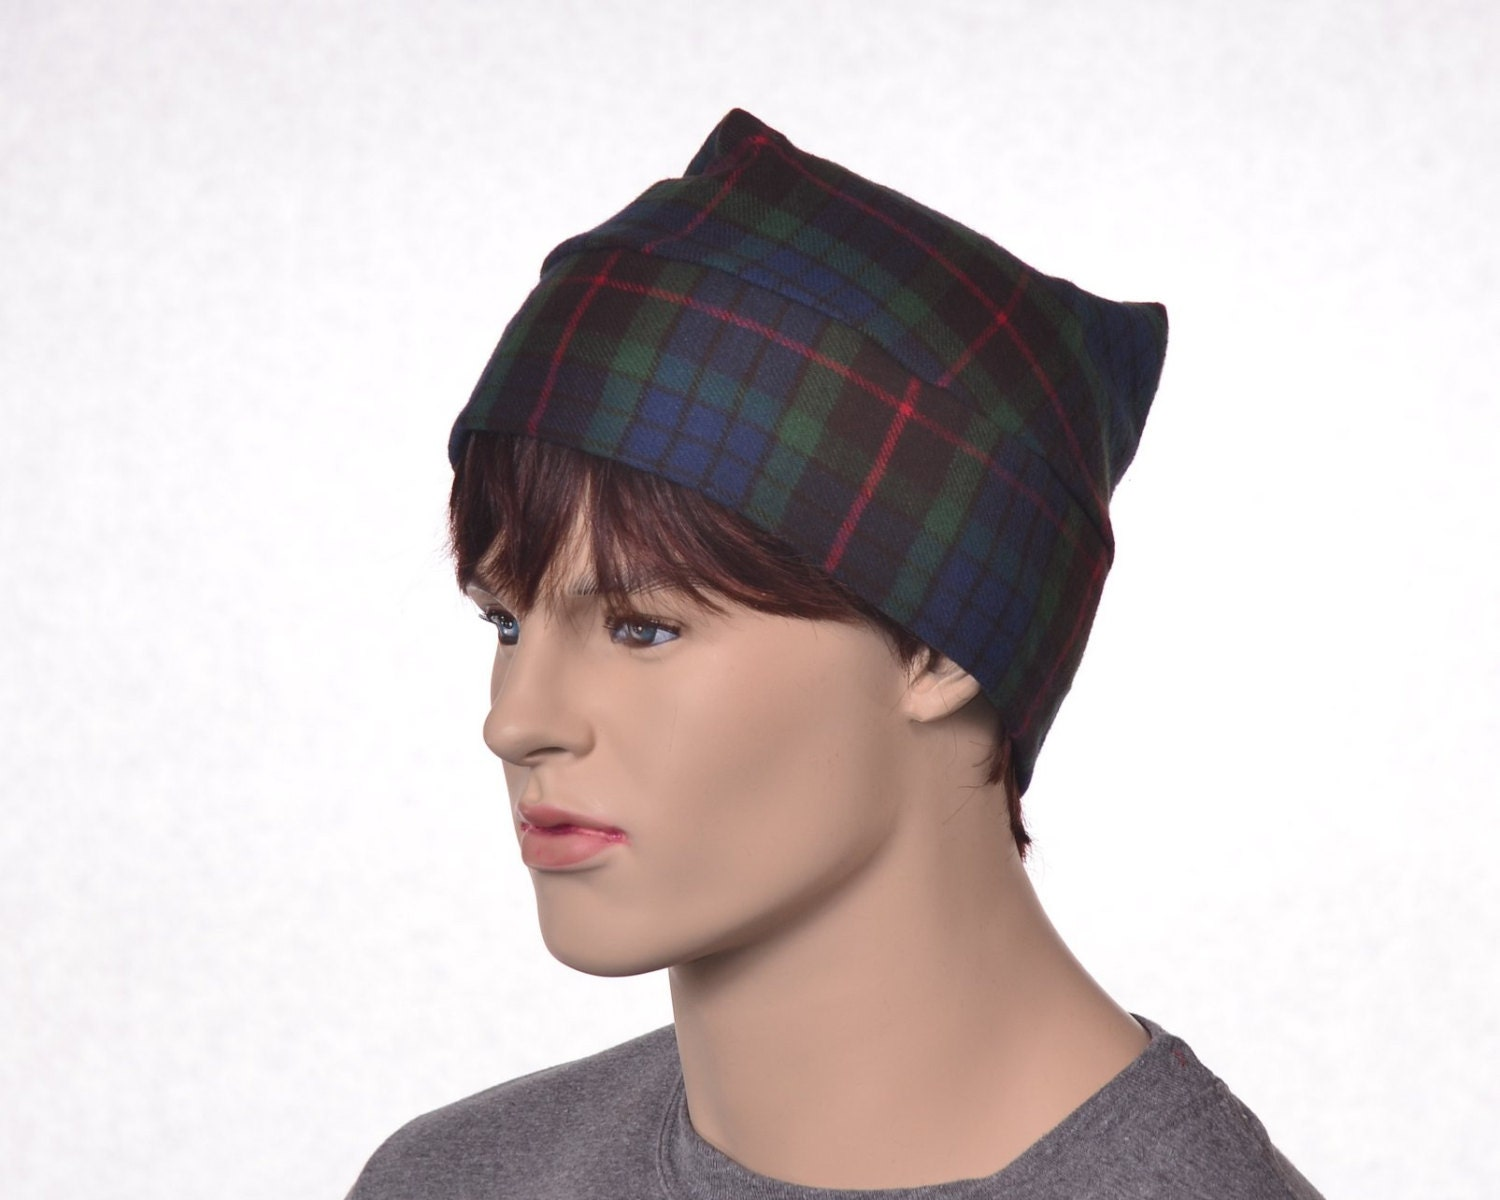 fcb9778673 Cotton Flannel Night Cap in Green Tartan Plaid Heavyweight Nightcap ...